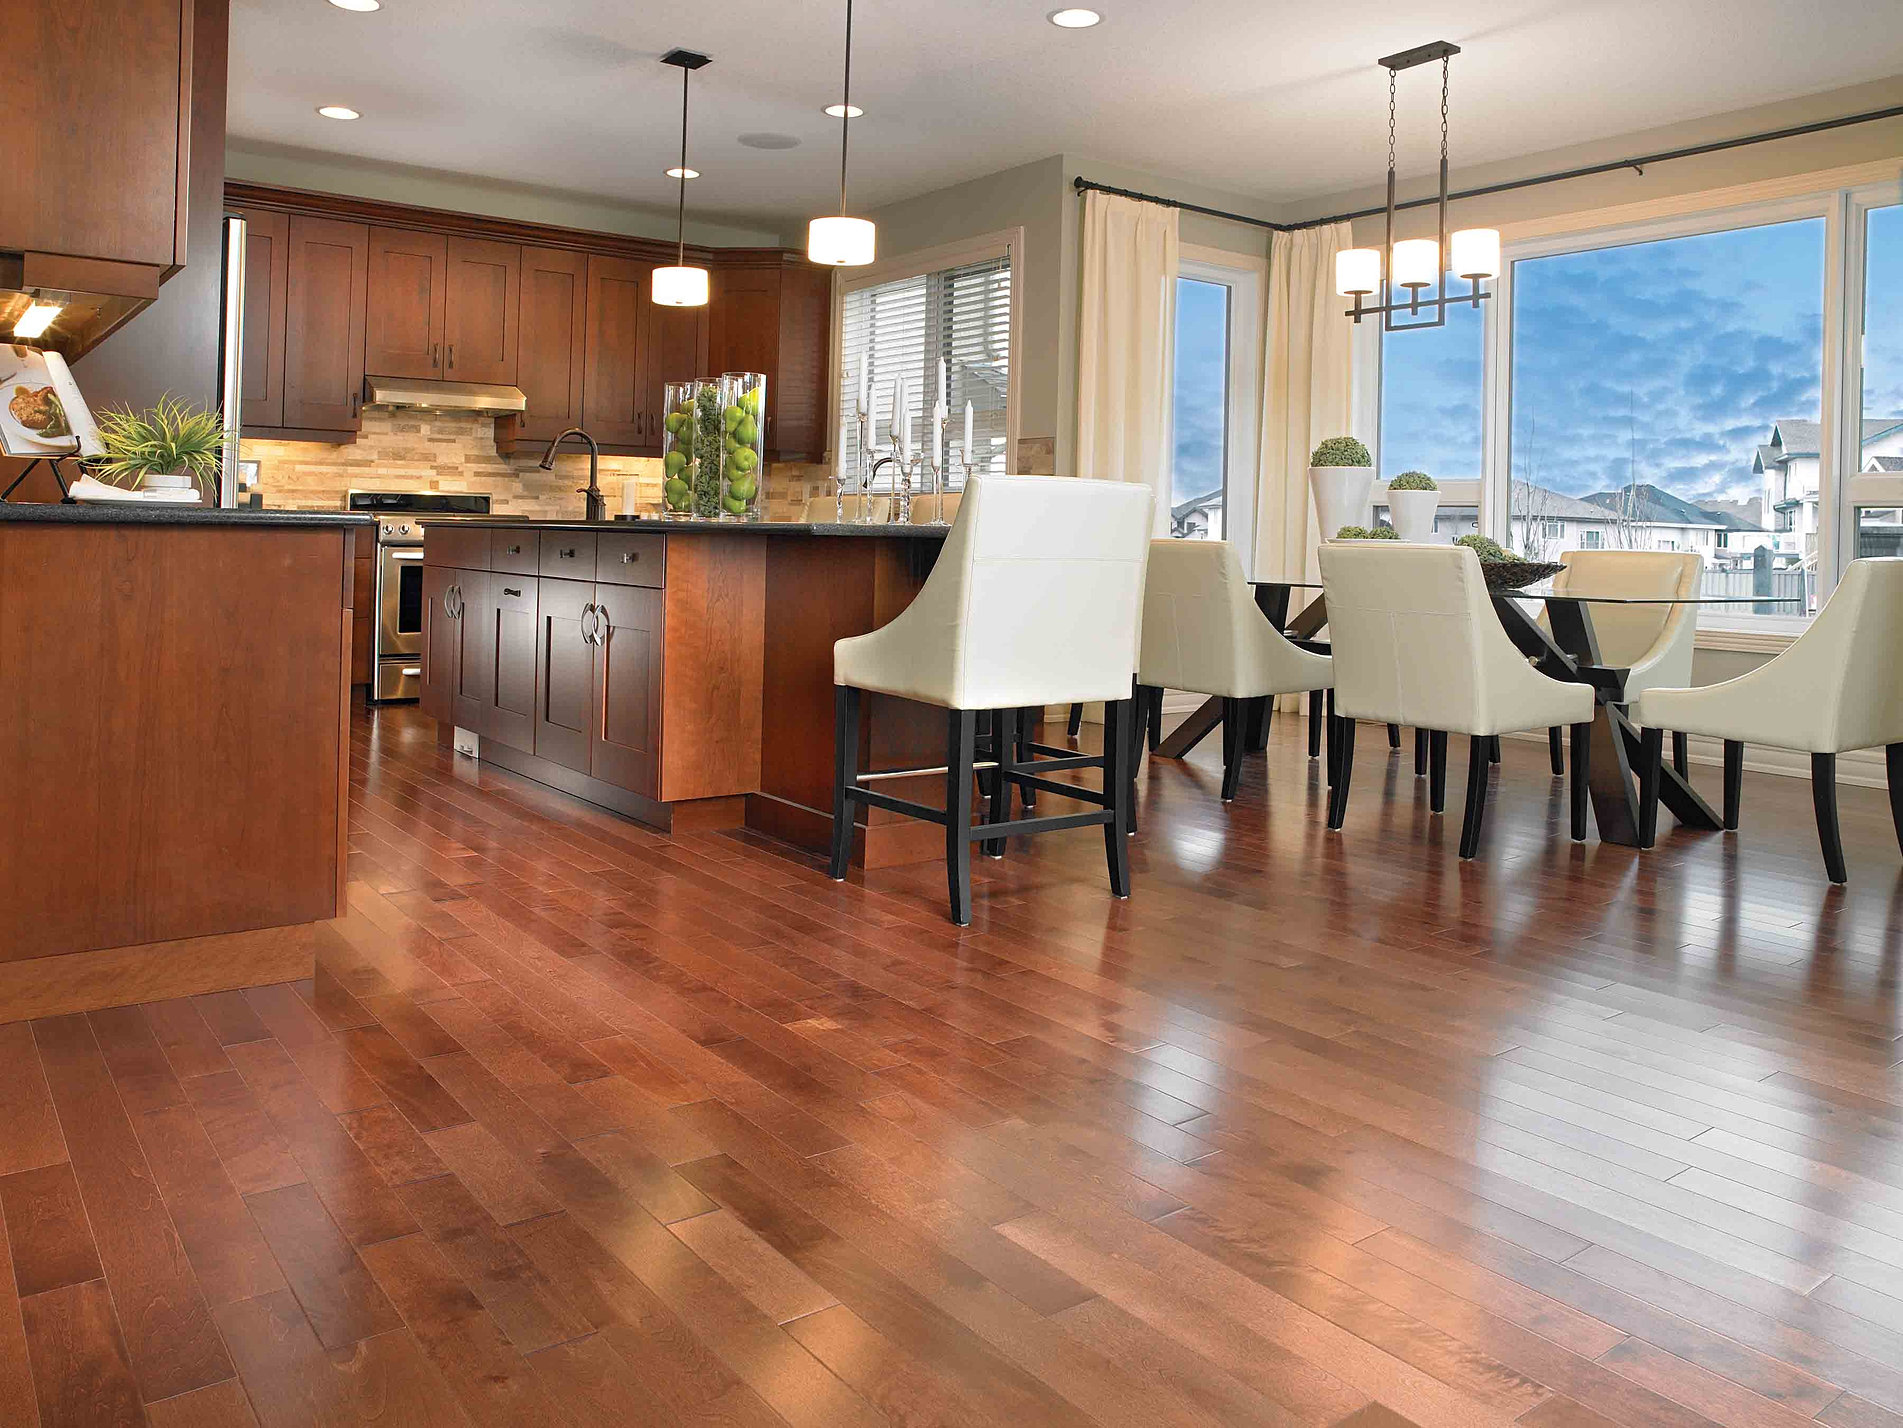 Kitchen Floor Wood Calvetta Brothers Floor Show 216 220 6473